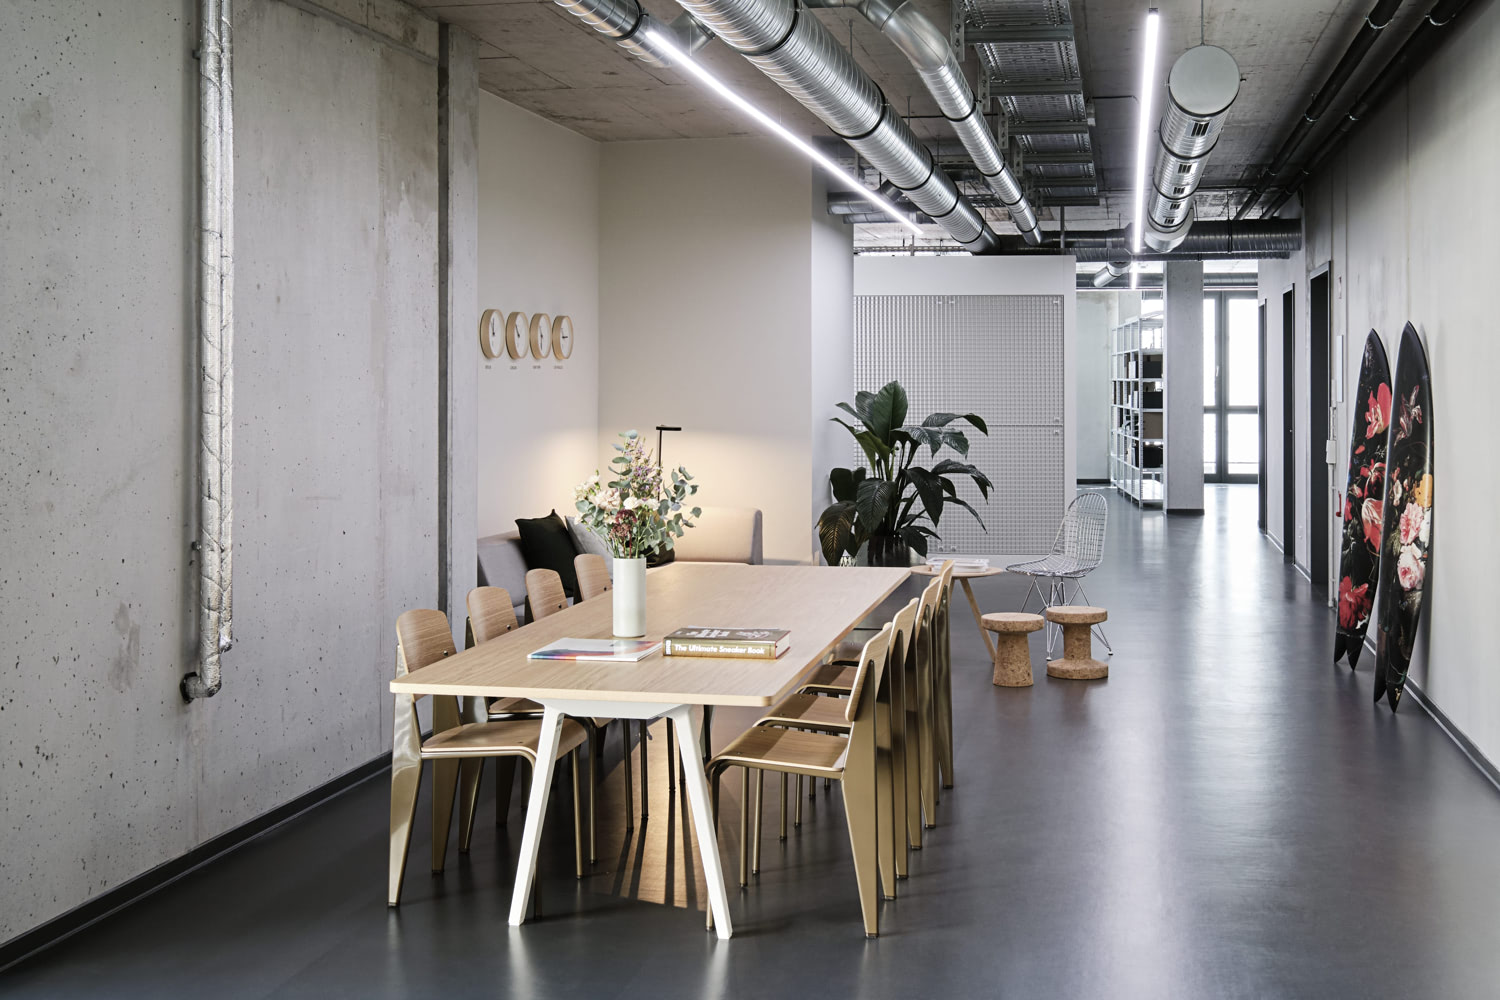 Photo of the Highsnobiety Berlin office.